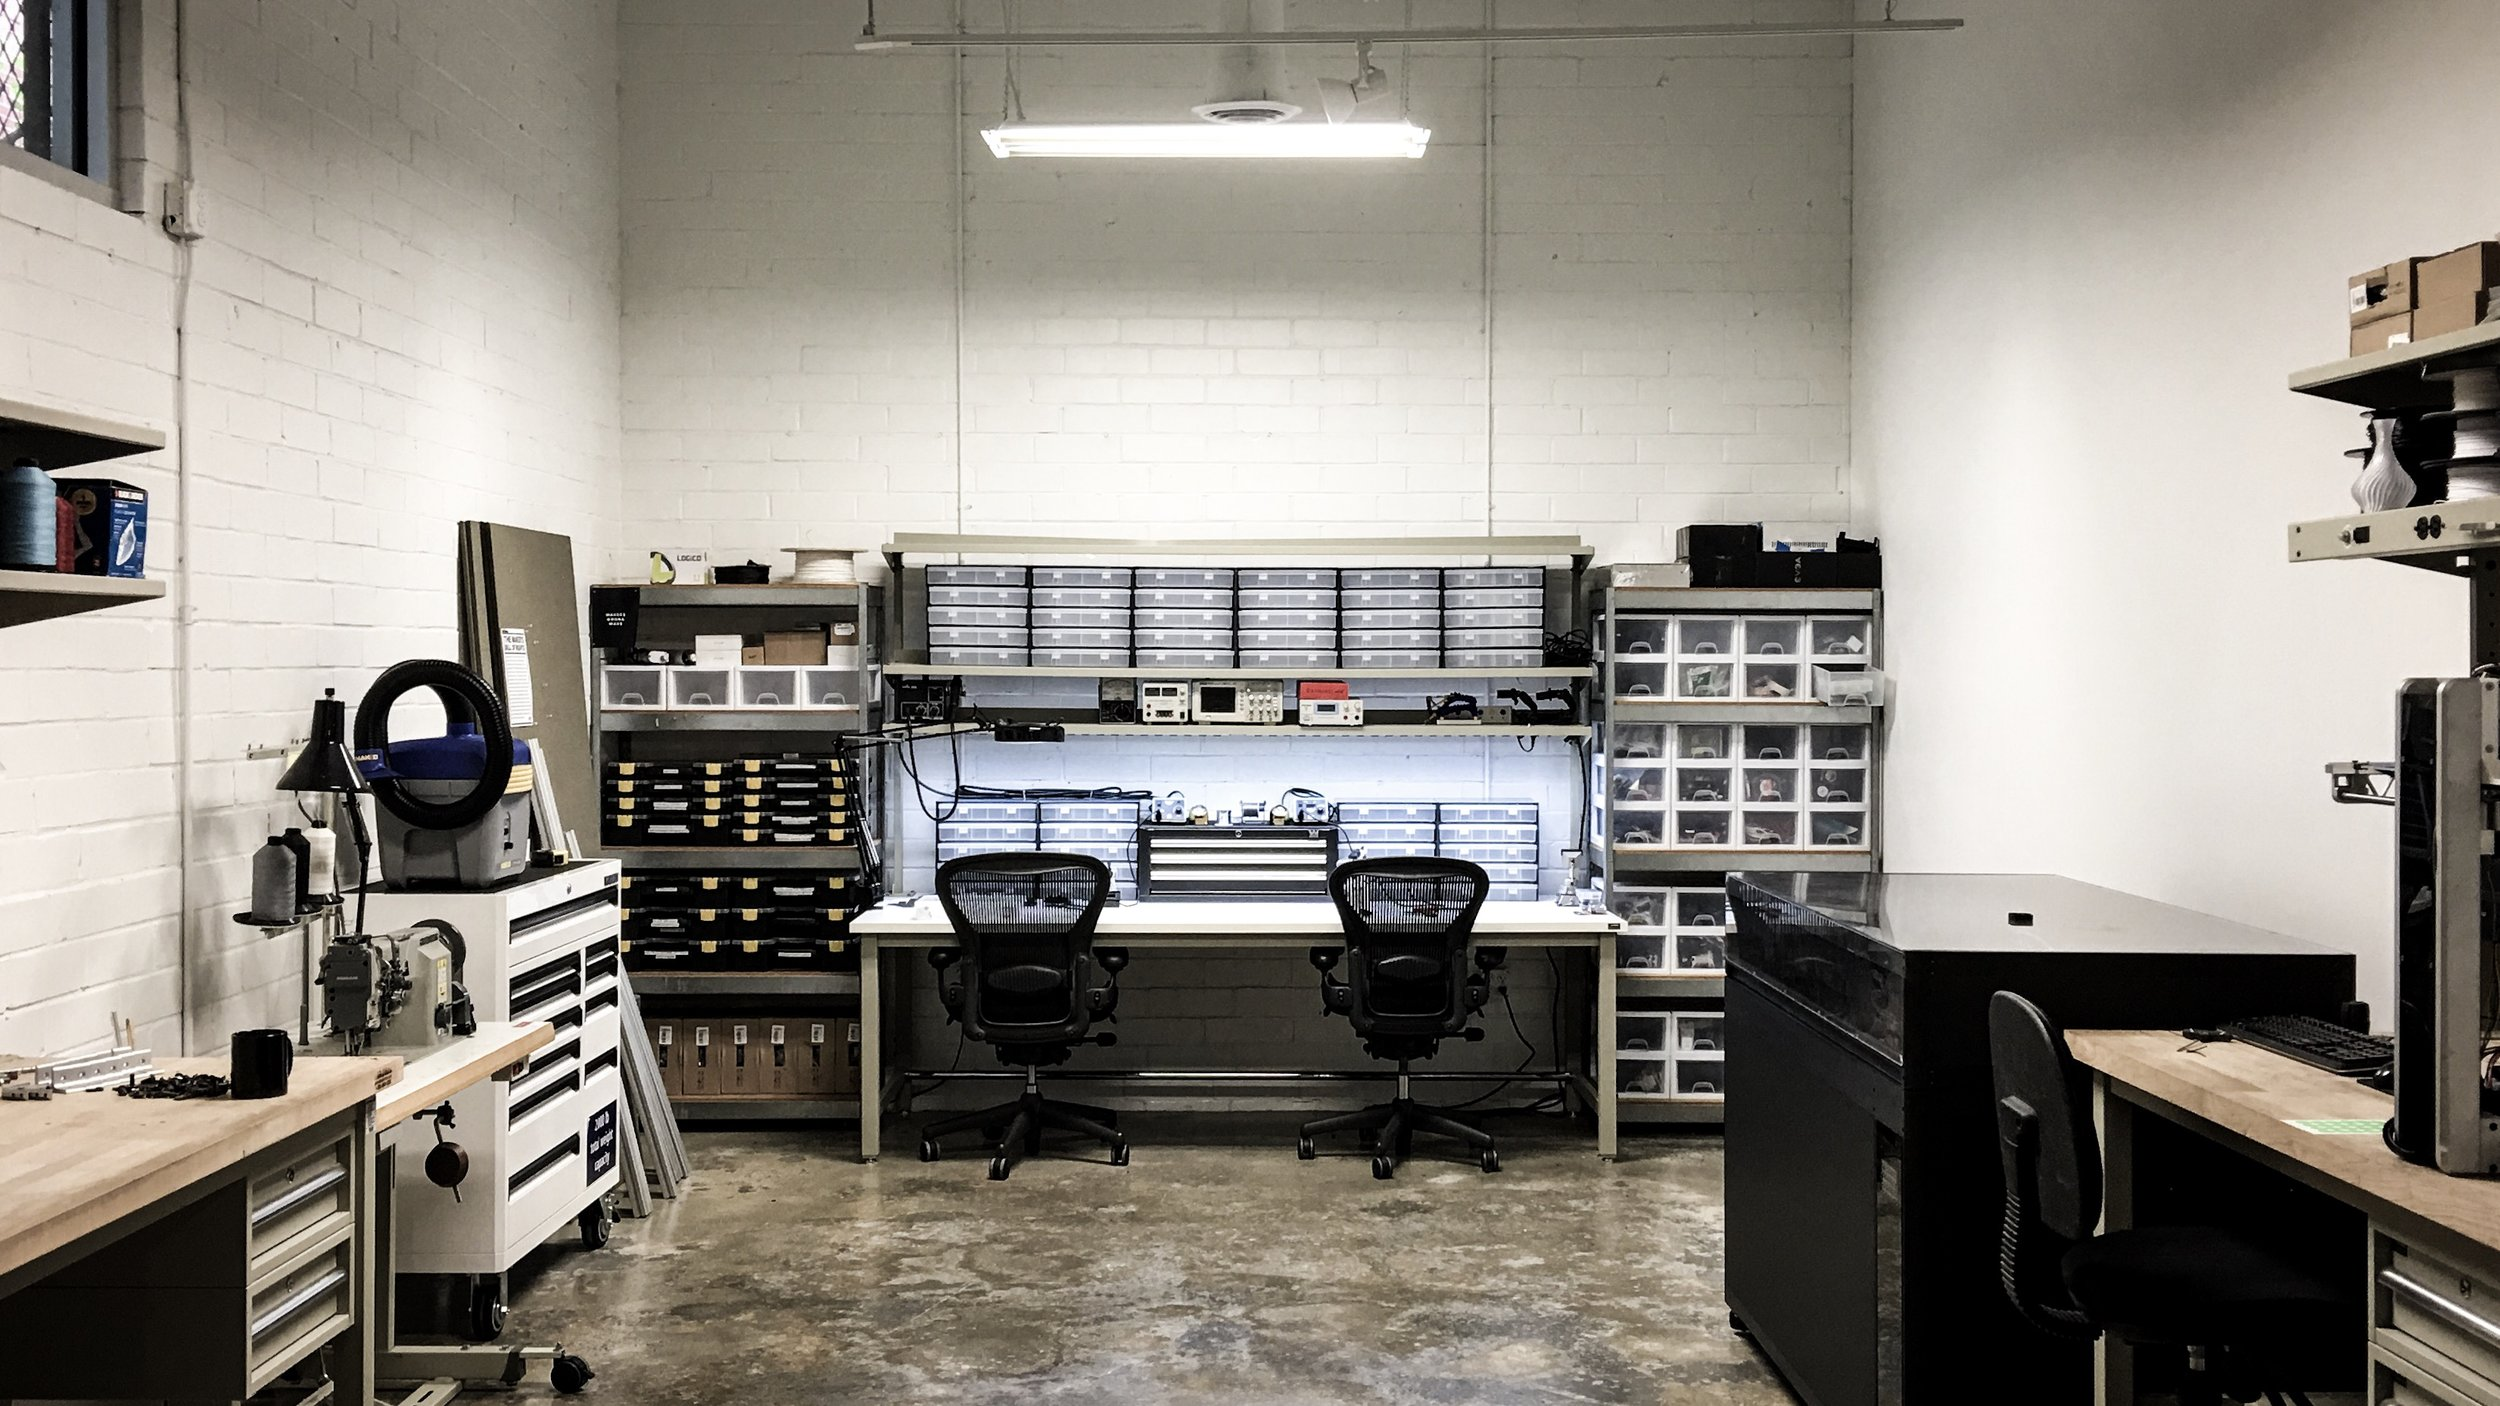 Digital Fabrication Lab - Equipped with soldering stations, diagnostic tools, a PCB reflow oven, and two large format 3D printers, our Digital Fabrication Lab allows us to quickly explore electromechanical designs and interactive prototypes.